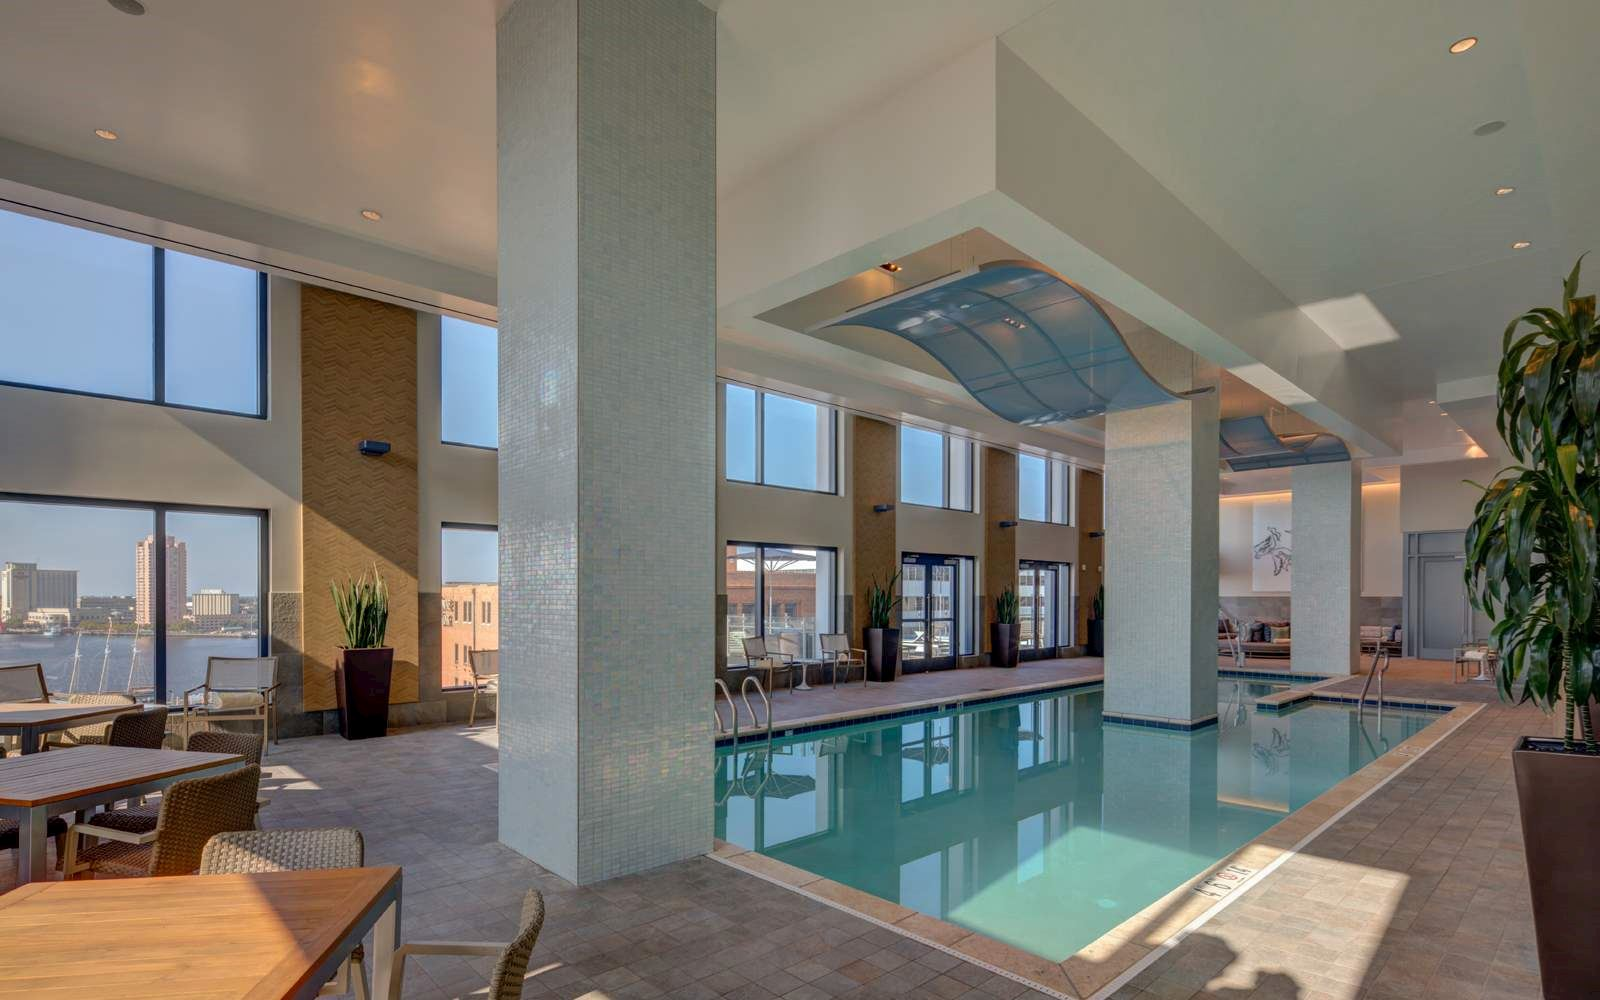 Luxury downtown norfolk hotel hilton norfolk at the main - Hotels with swimming pools in norfolk ...